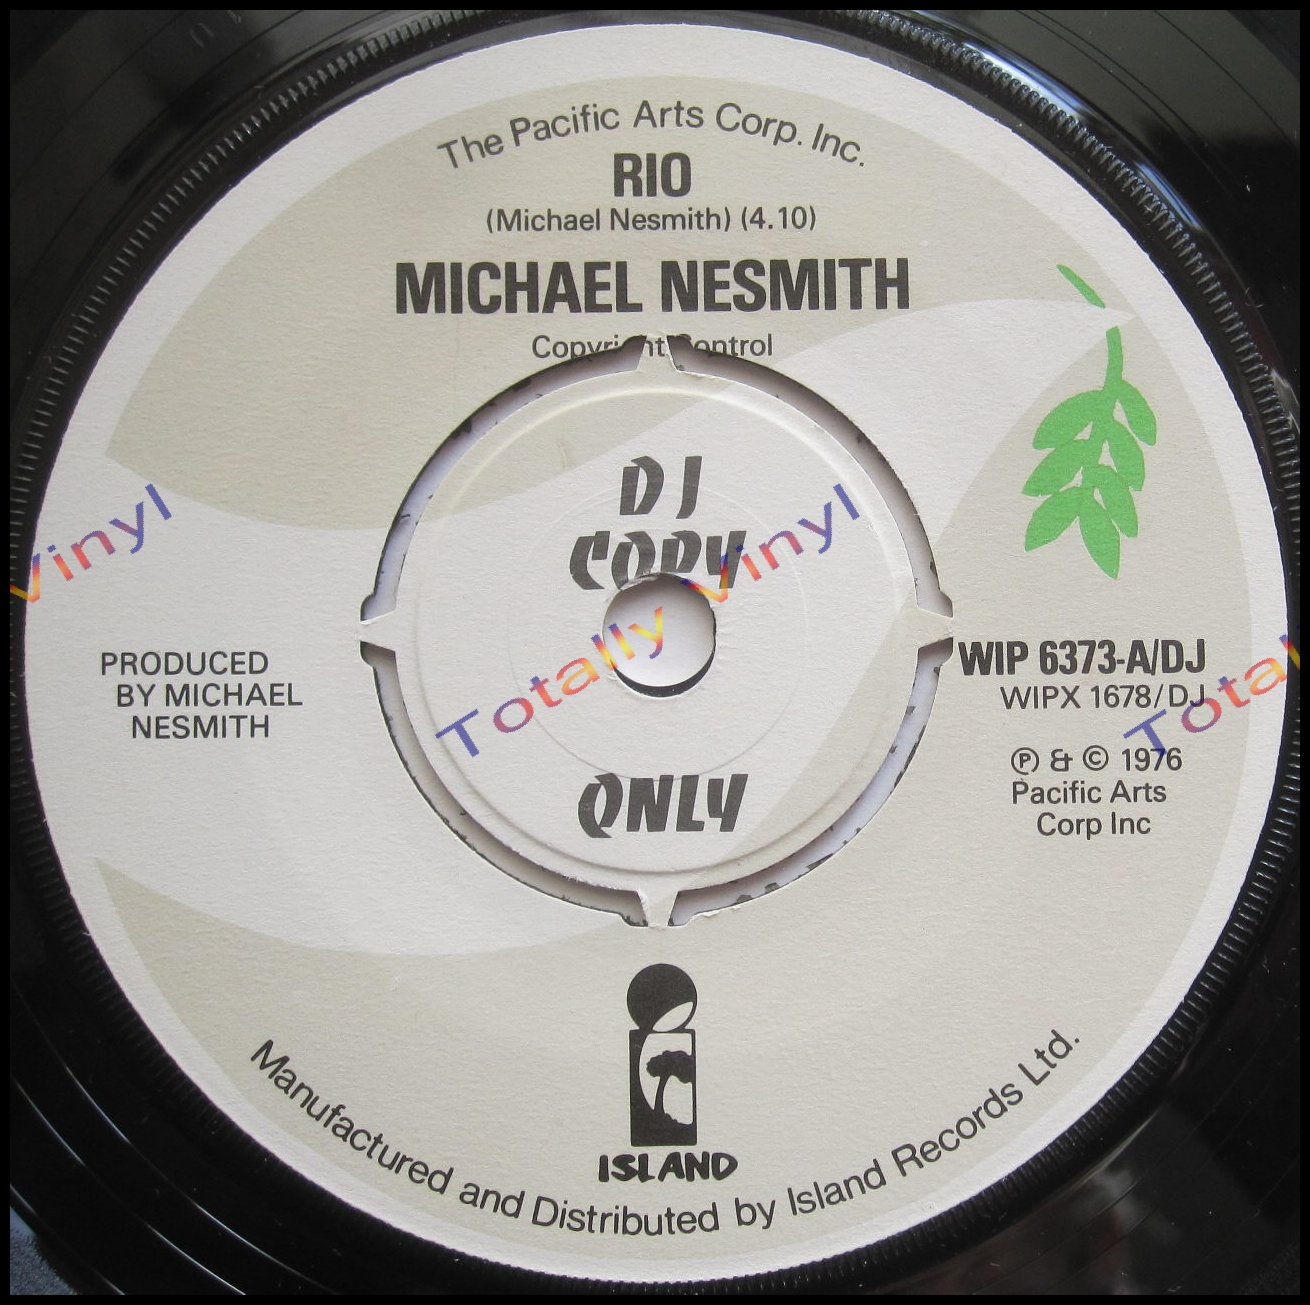 nesmith singles Magnetic south michael nesmith singles michael nesmith silver moon michael nesmith and the hits just keep on comin' & pretty much your standard ranch stash michael nesmith from a radio engine to the photon wing (remastered 1994) michael nesmith.